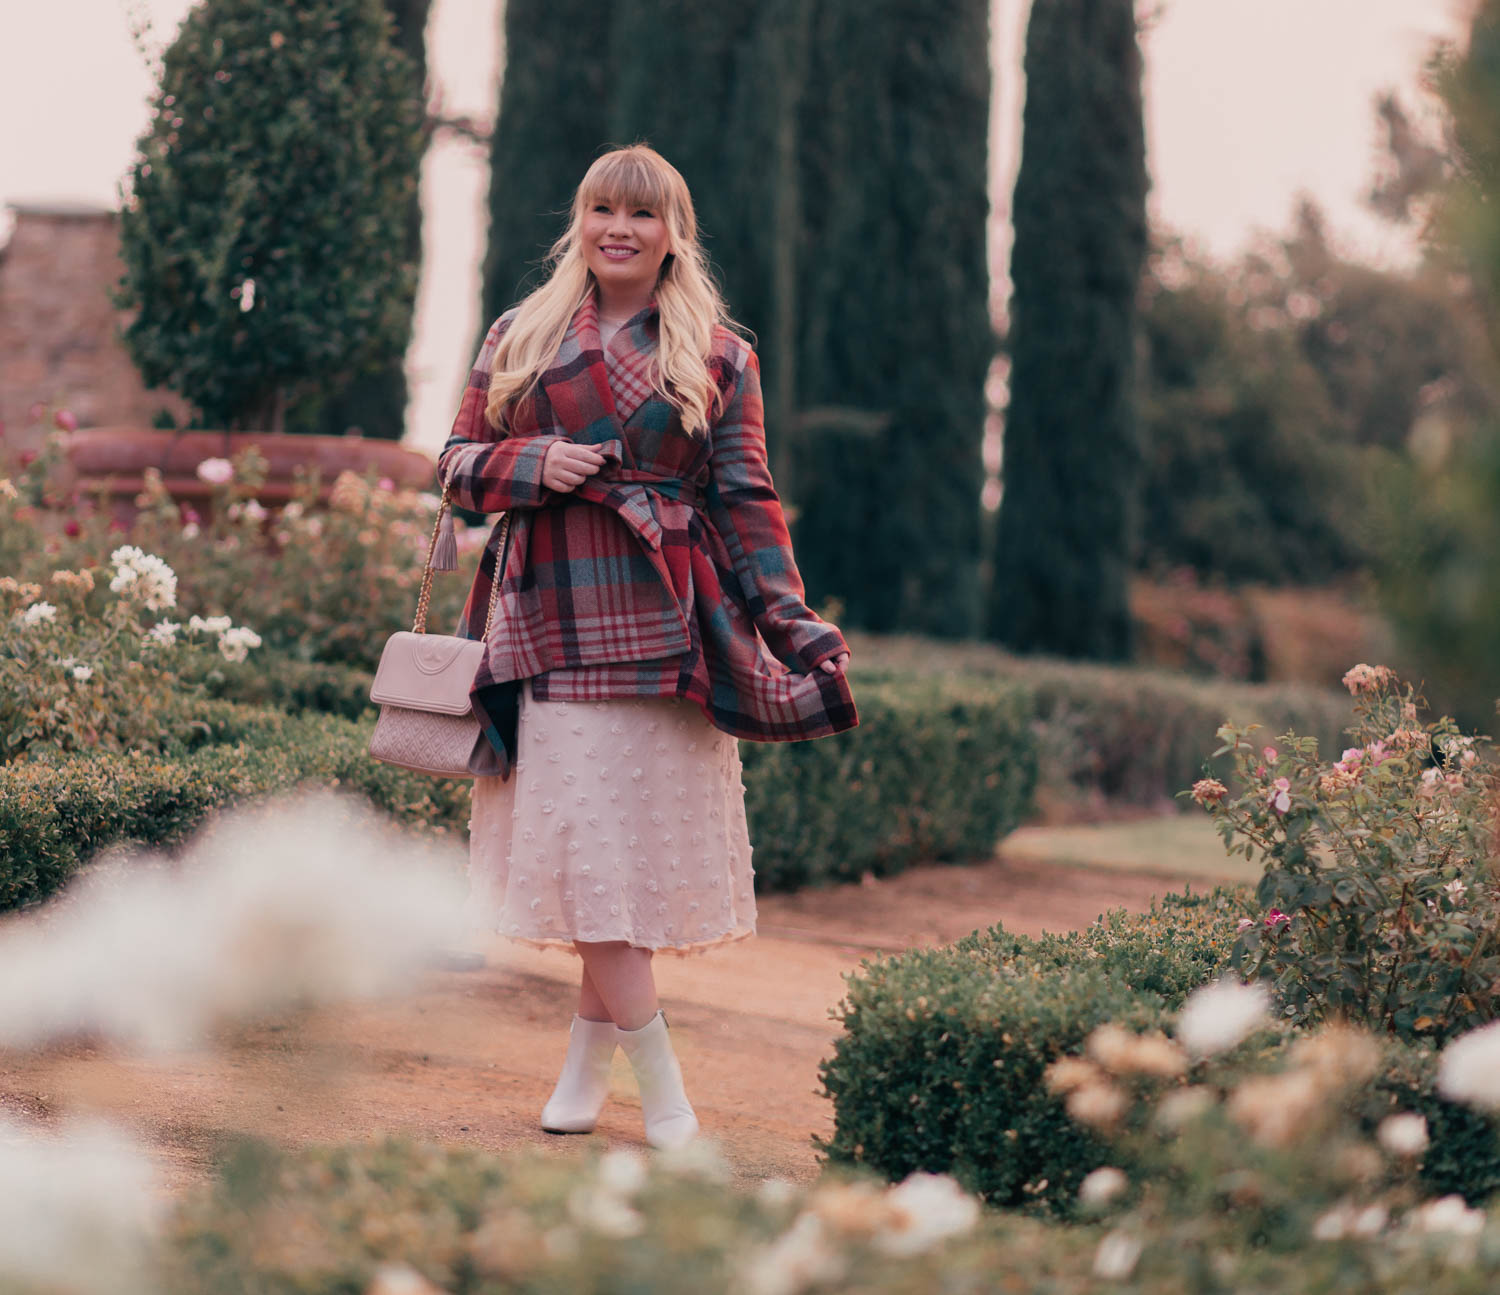 Fashion Blogger Elizabeth Hugen of Lizzie in Lace styles a cozy fall outfit including a plaid Chicwish coat, cream midi dress, white Franco Sarto Boots and a Tory Burch Fleming handbag